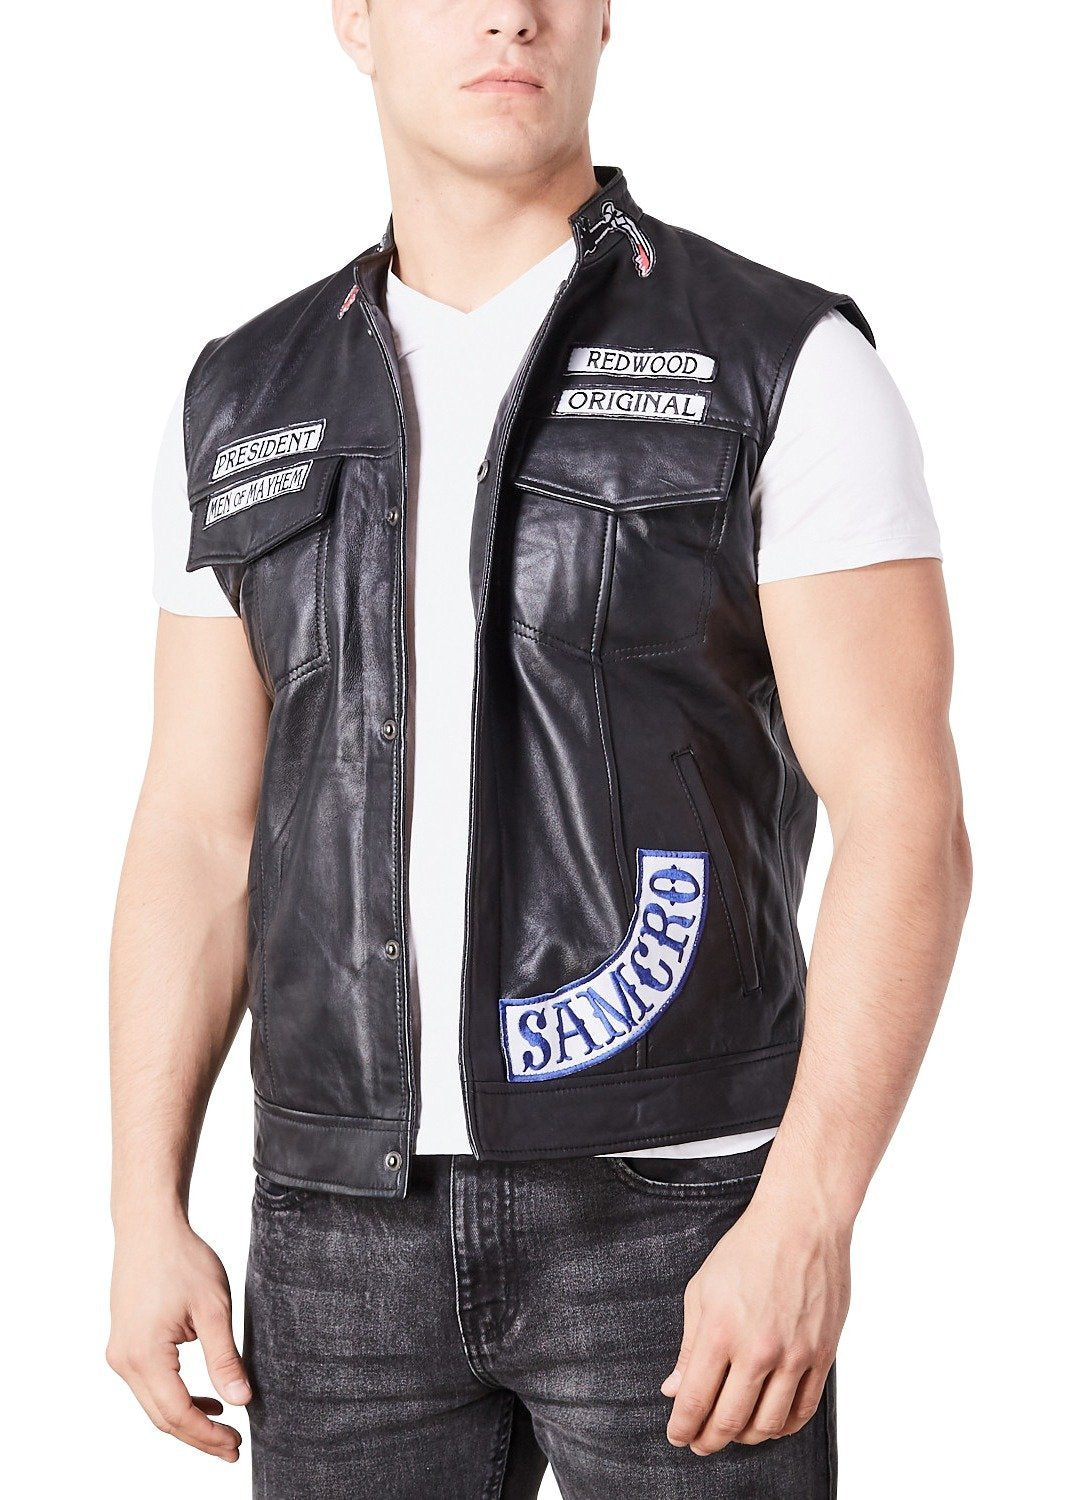 Sons of Anarchy Costume Replica Motorcycle Vest Leather